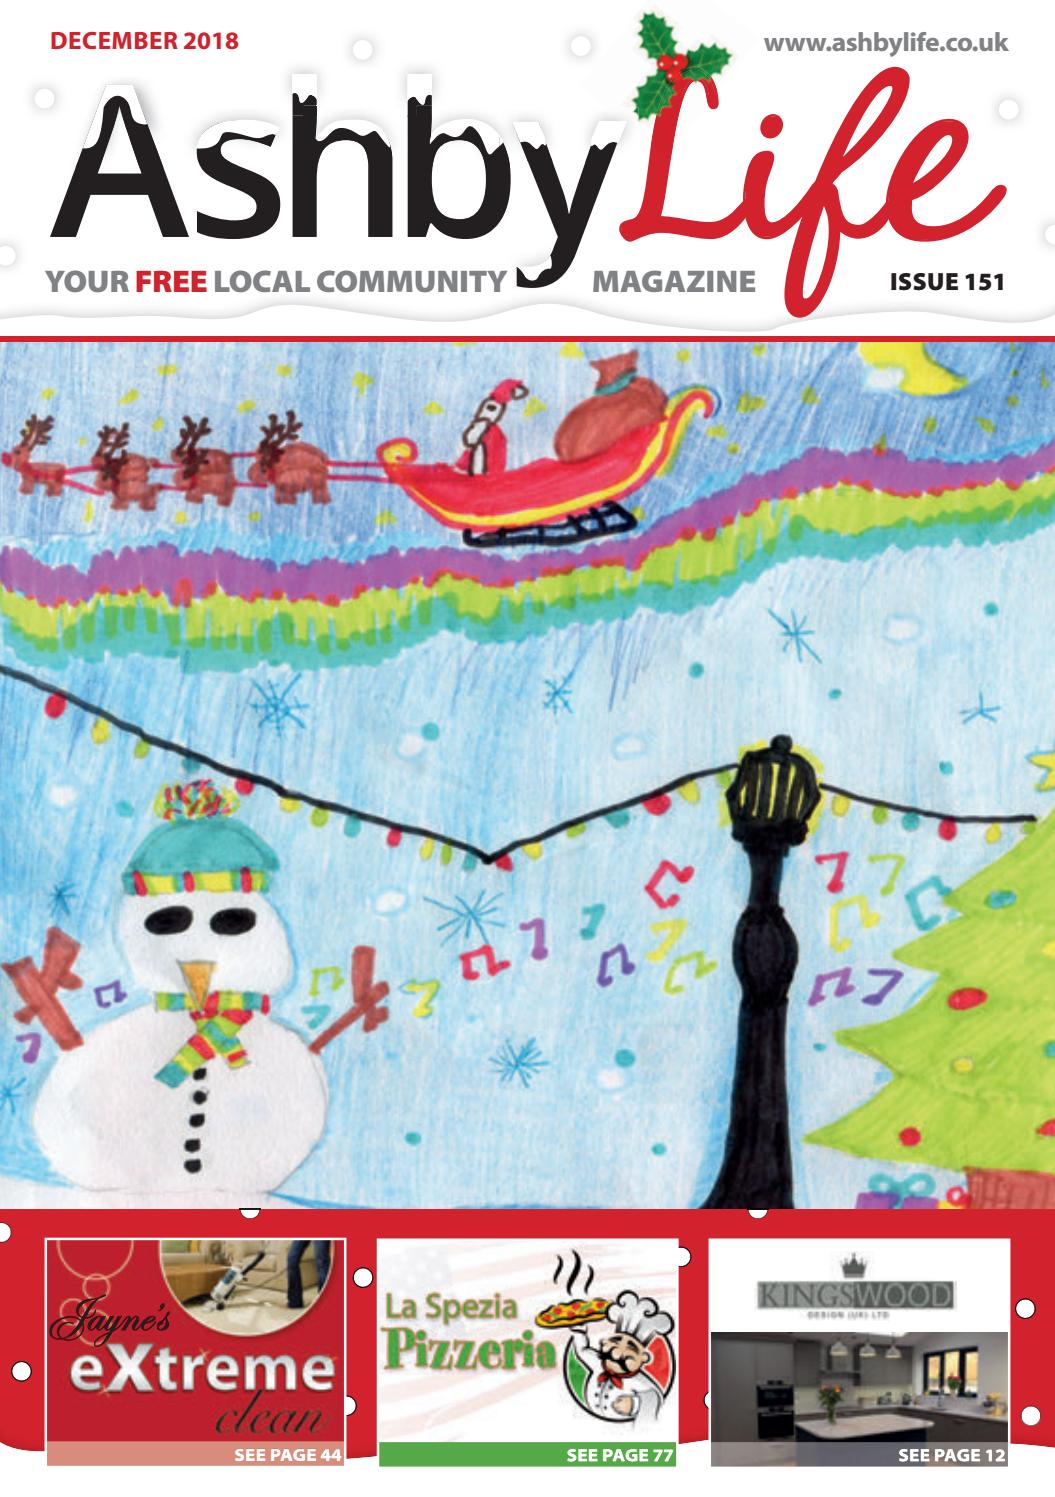 Ashby Life Magazine December 2018 By Ashby Life Issuu